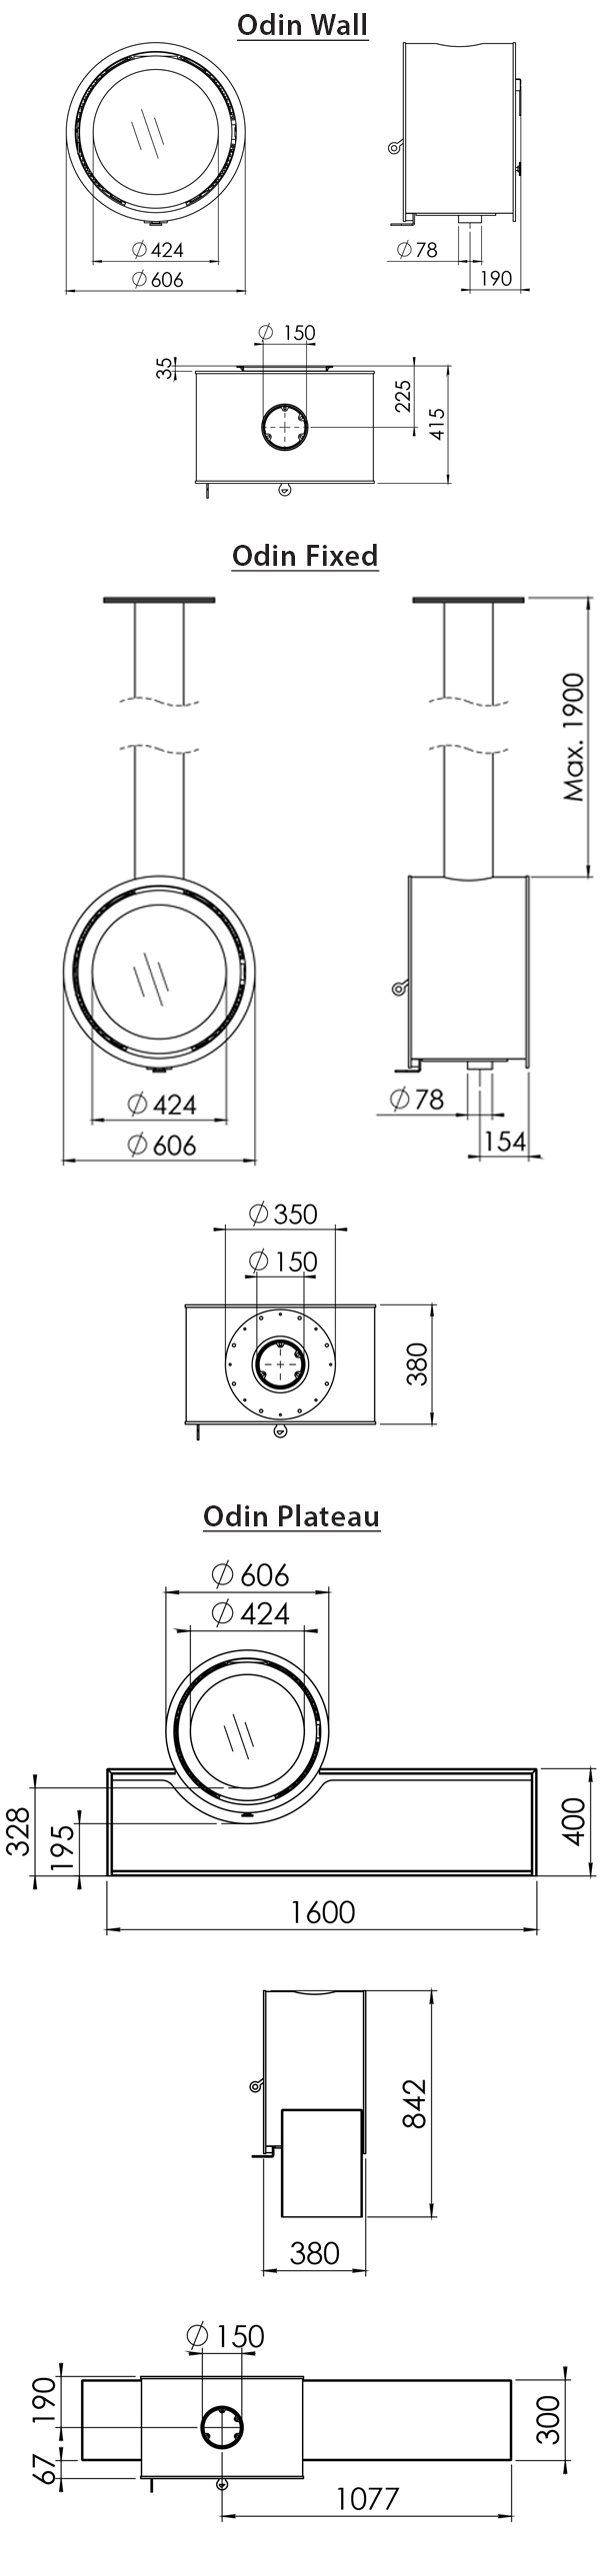 Dik Geurts Odin Wood Burning Stove Sizes